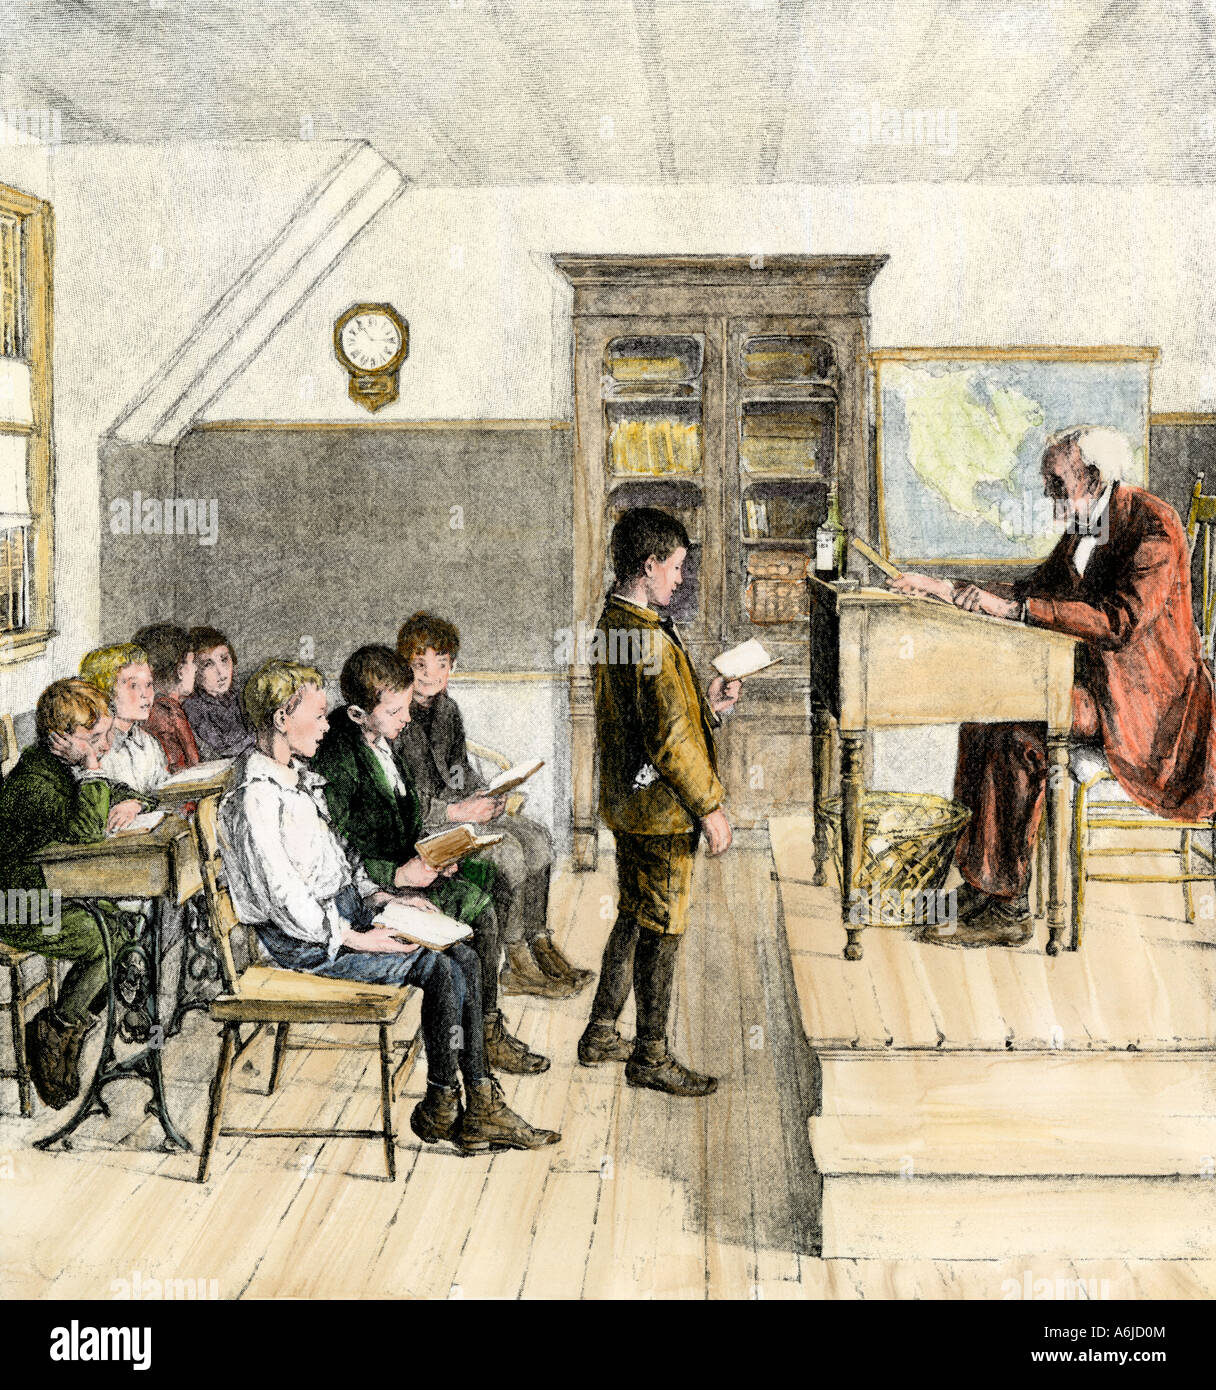 Boys doing a reading lesson in a schoolroom 1800s. Hand-colored woodcut - Stock Image